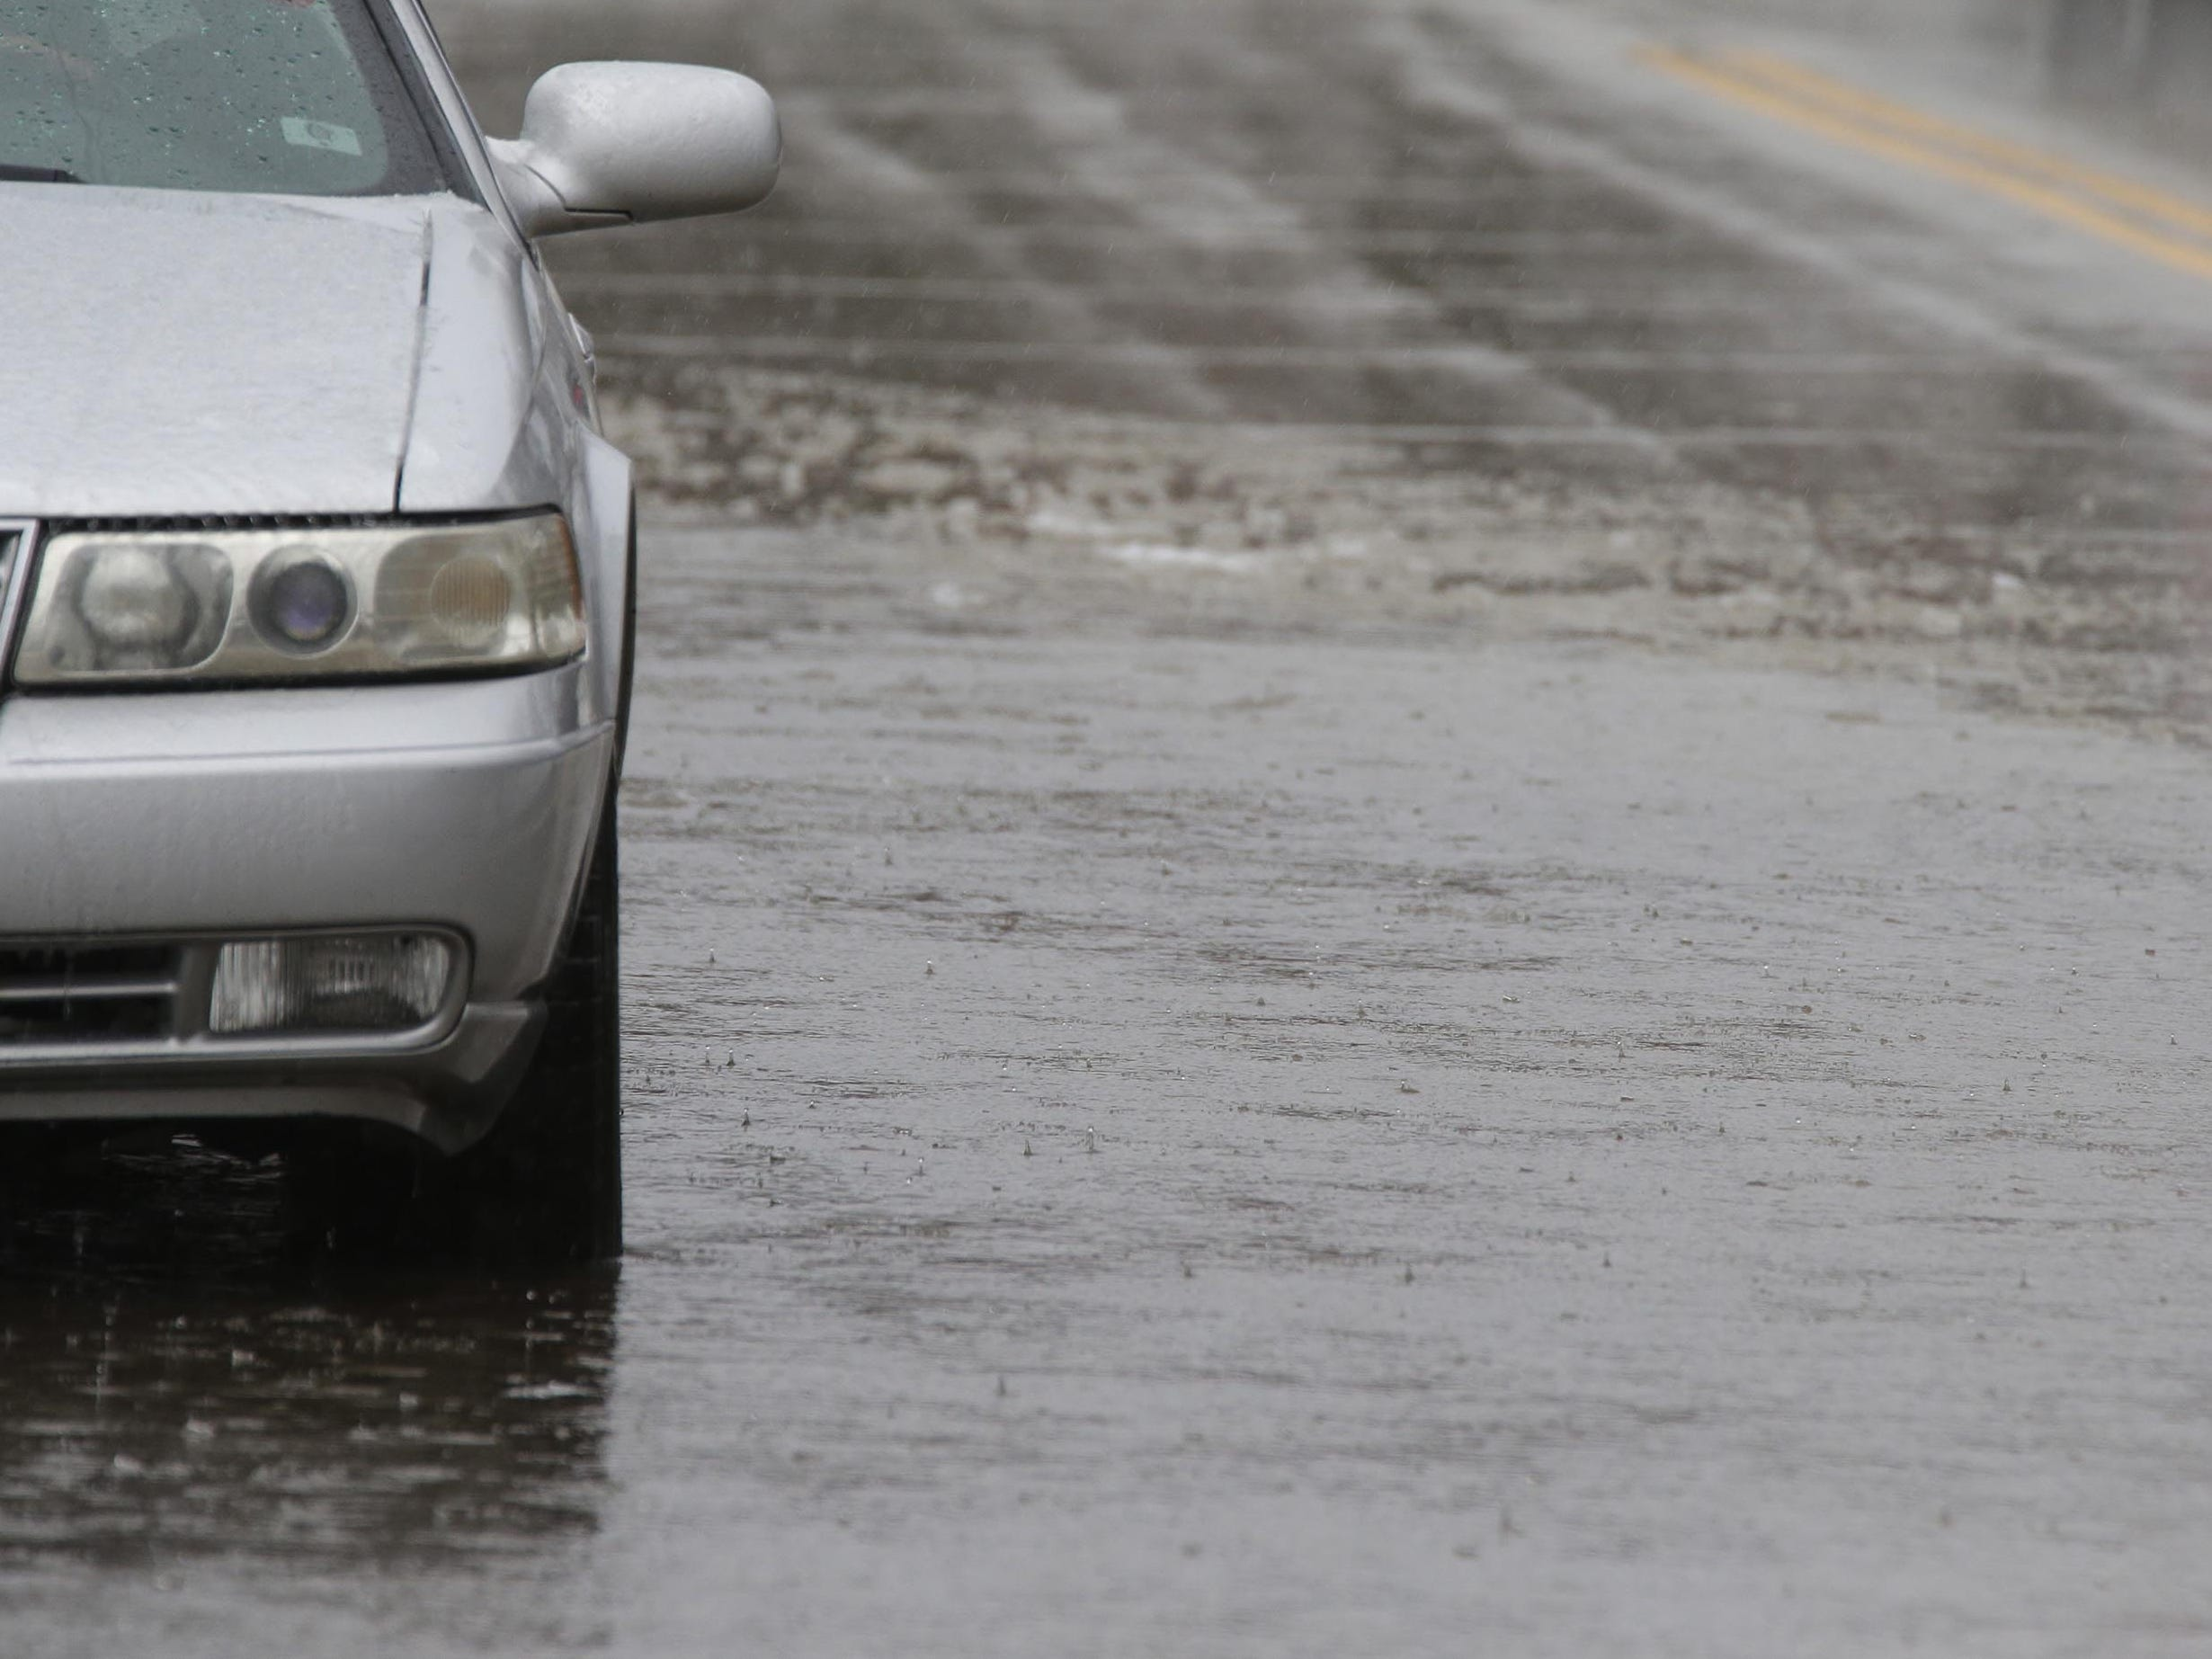 A vehicle is parked in standing water along Broughton Drive, Tuesday, February 5, 2019, in Sheboygan, Wis. Early afternoon rain combined with frozen street drains caused localized flooding.